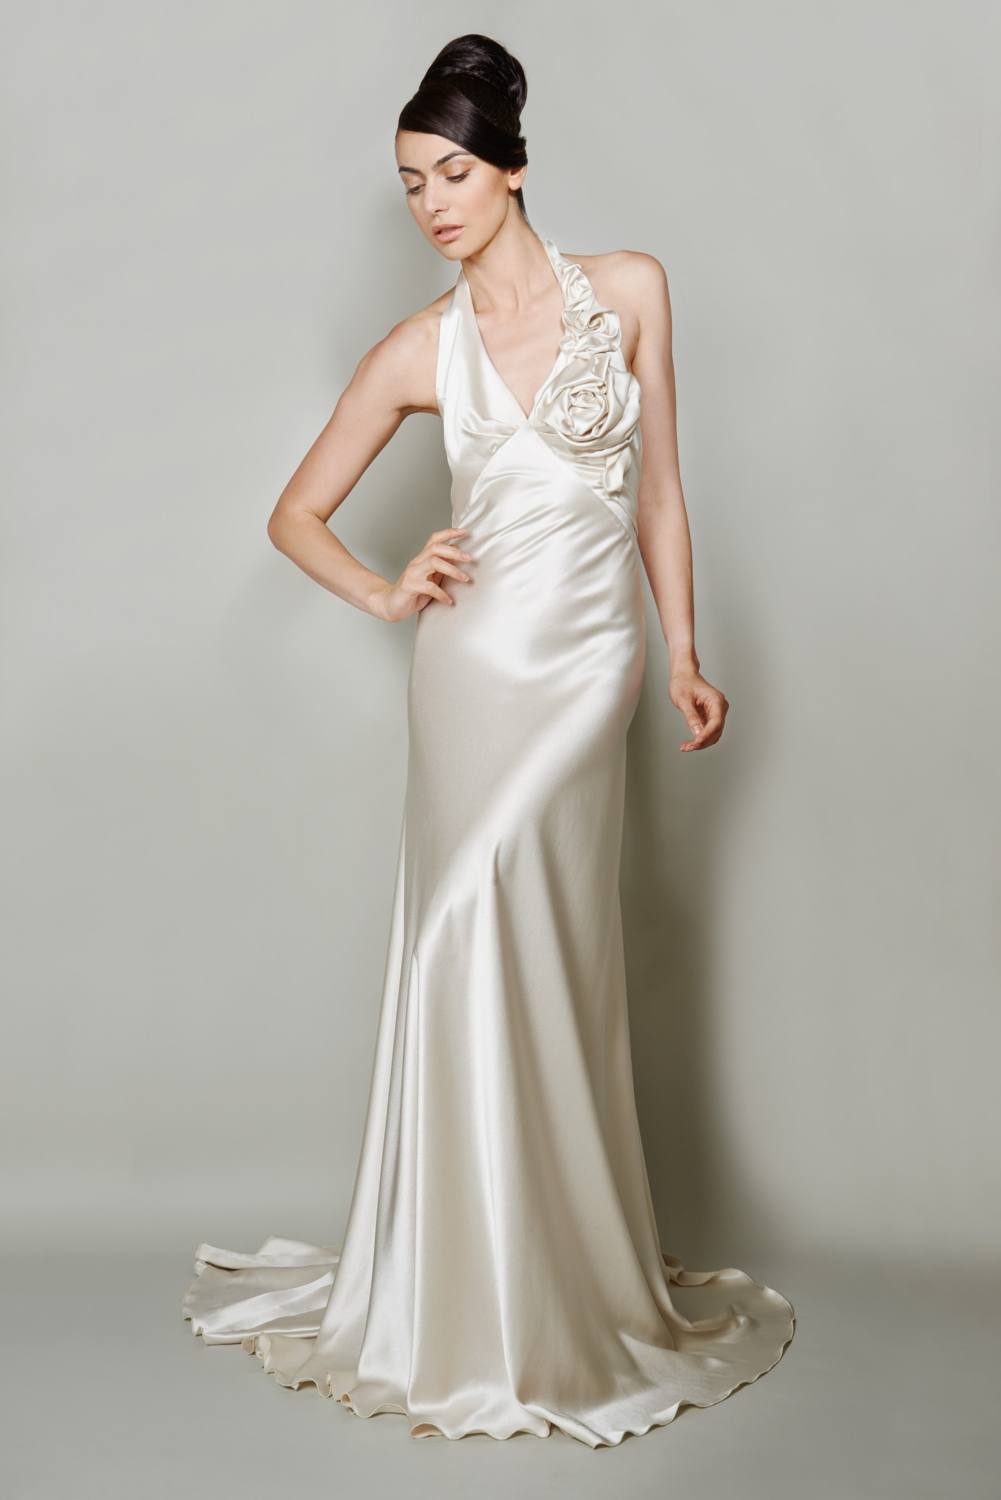 Silk couture wedding dress with sculptured flower